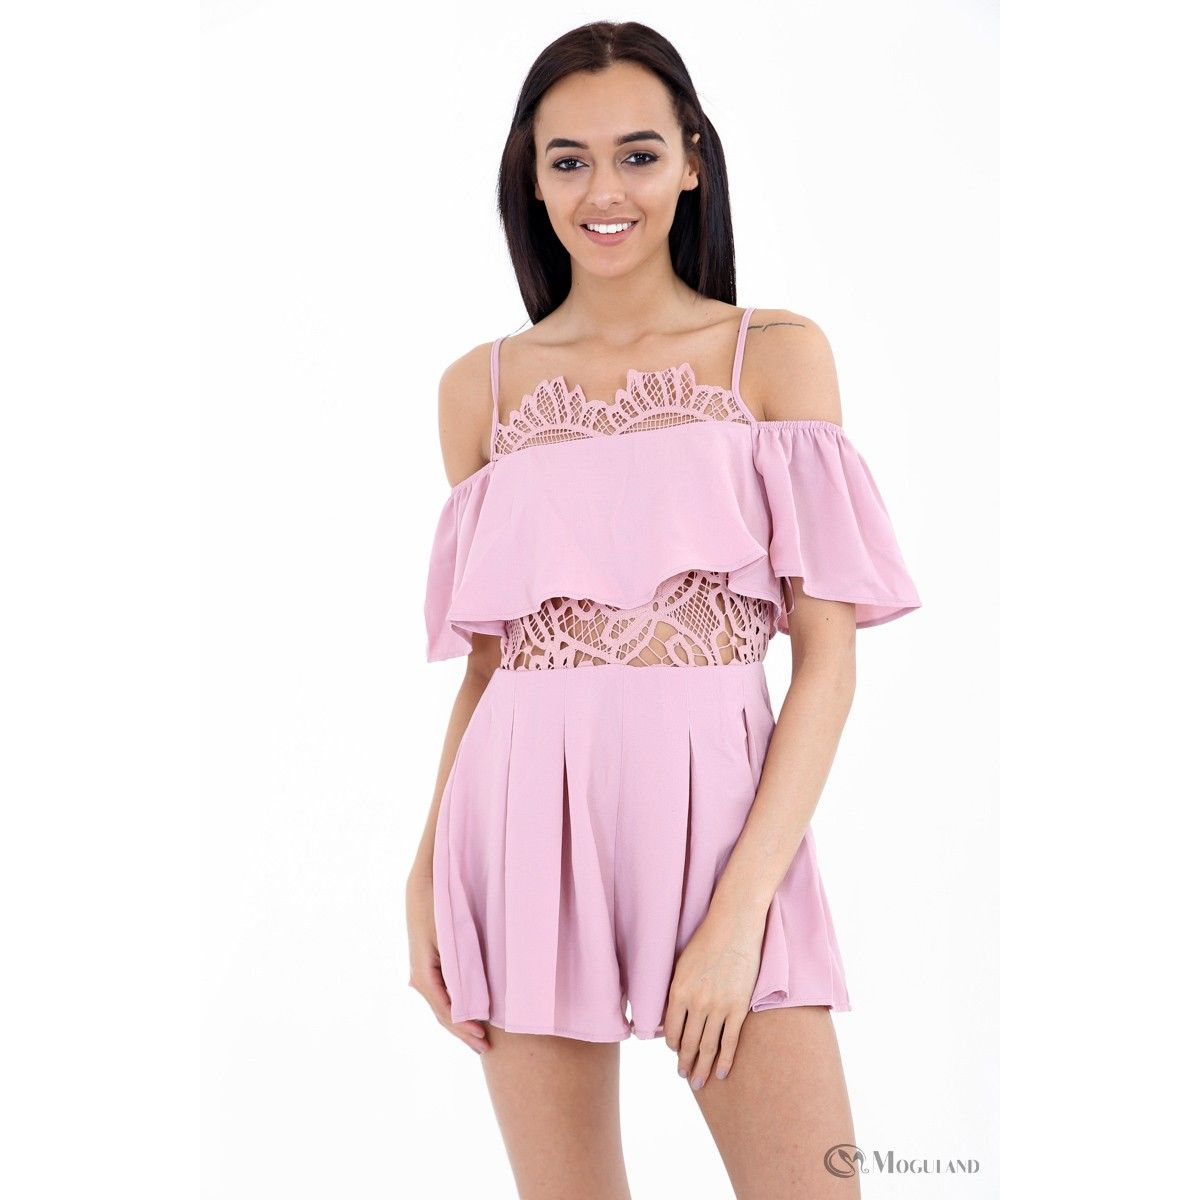 c15e681f40 Ladies pink off the shoulder flounce crochet playsuit wholesale - new  in  playsuits -